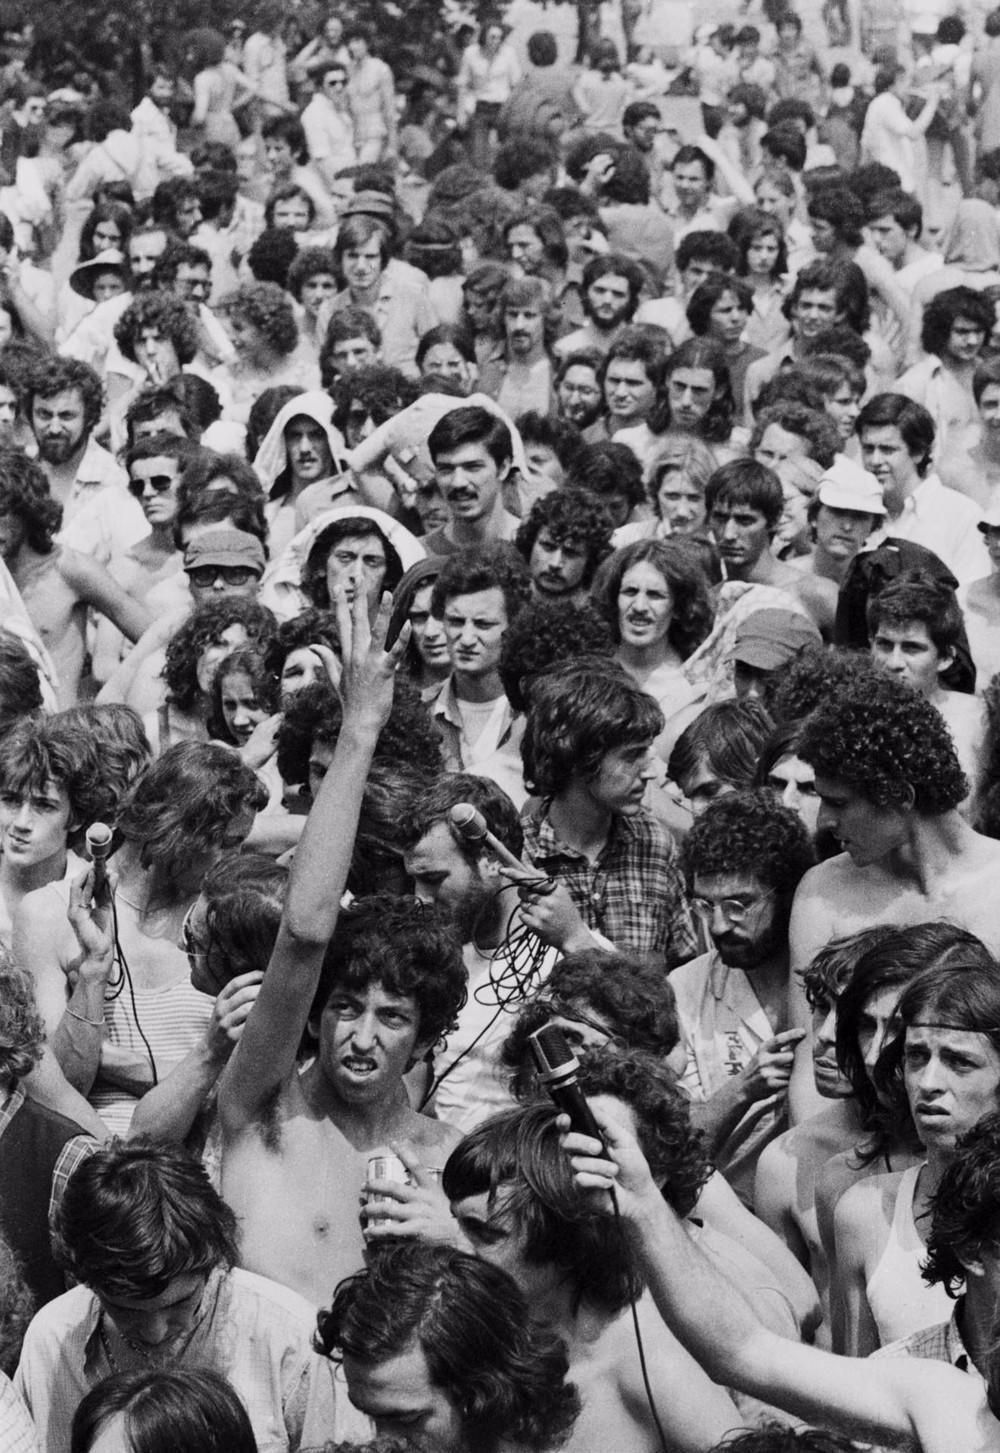 Naked Pictures From Woodstock